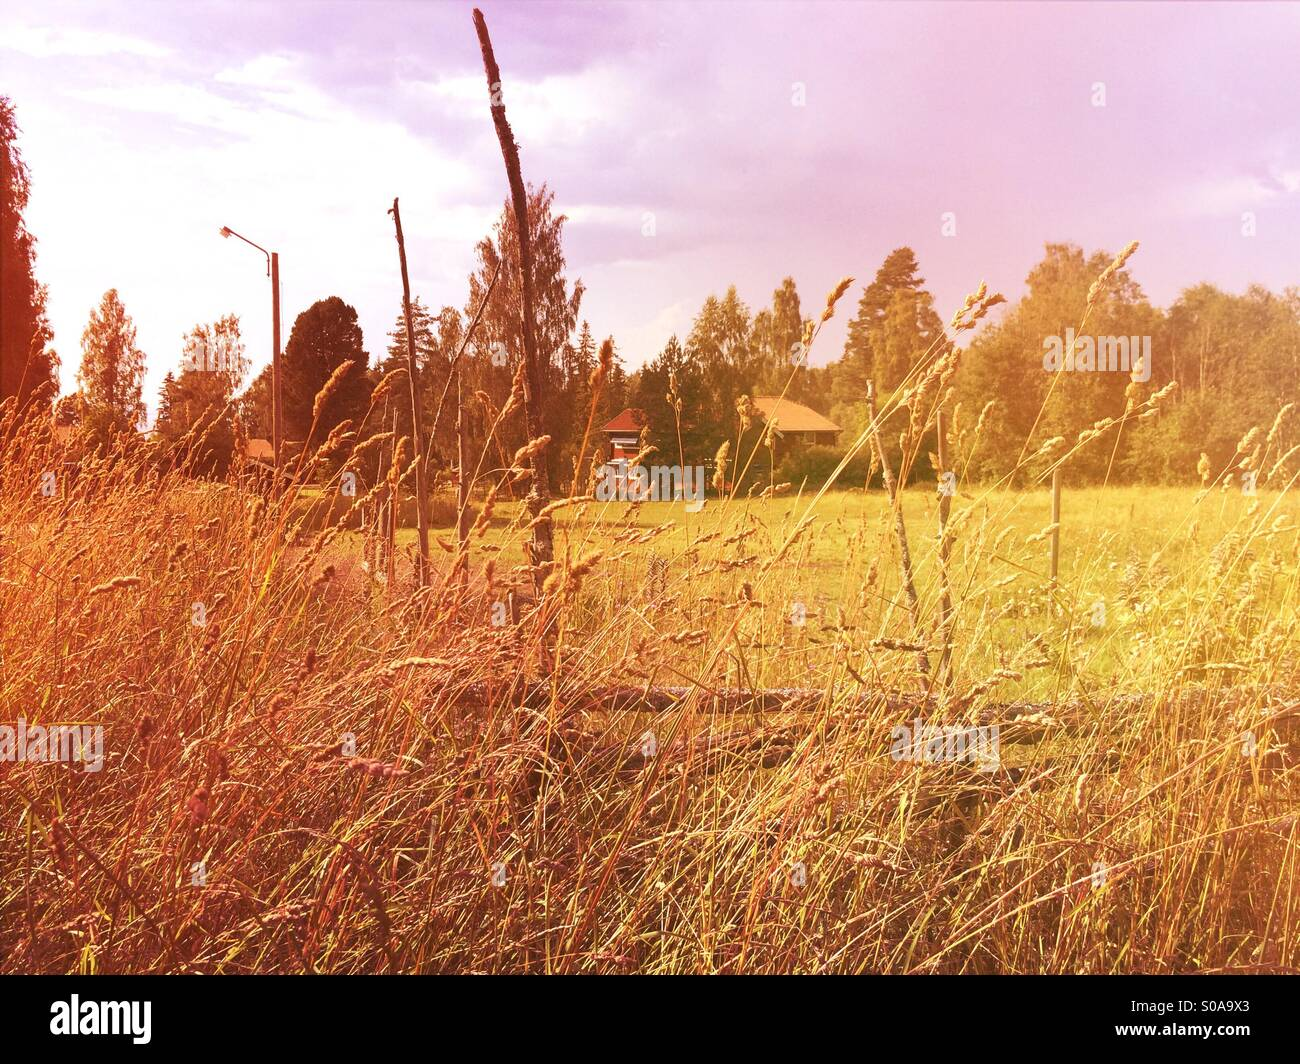 Long grass with traditional swedish wooden fence and house painted in Falu red in background, Tallber, Dalarna, - Stock Image